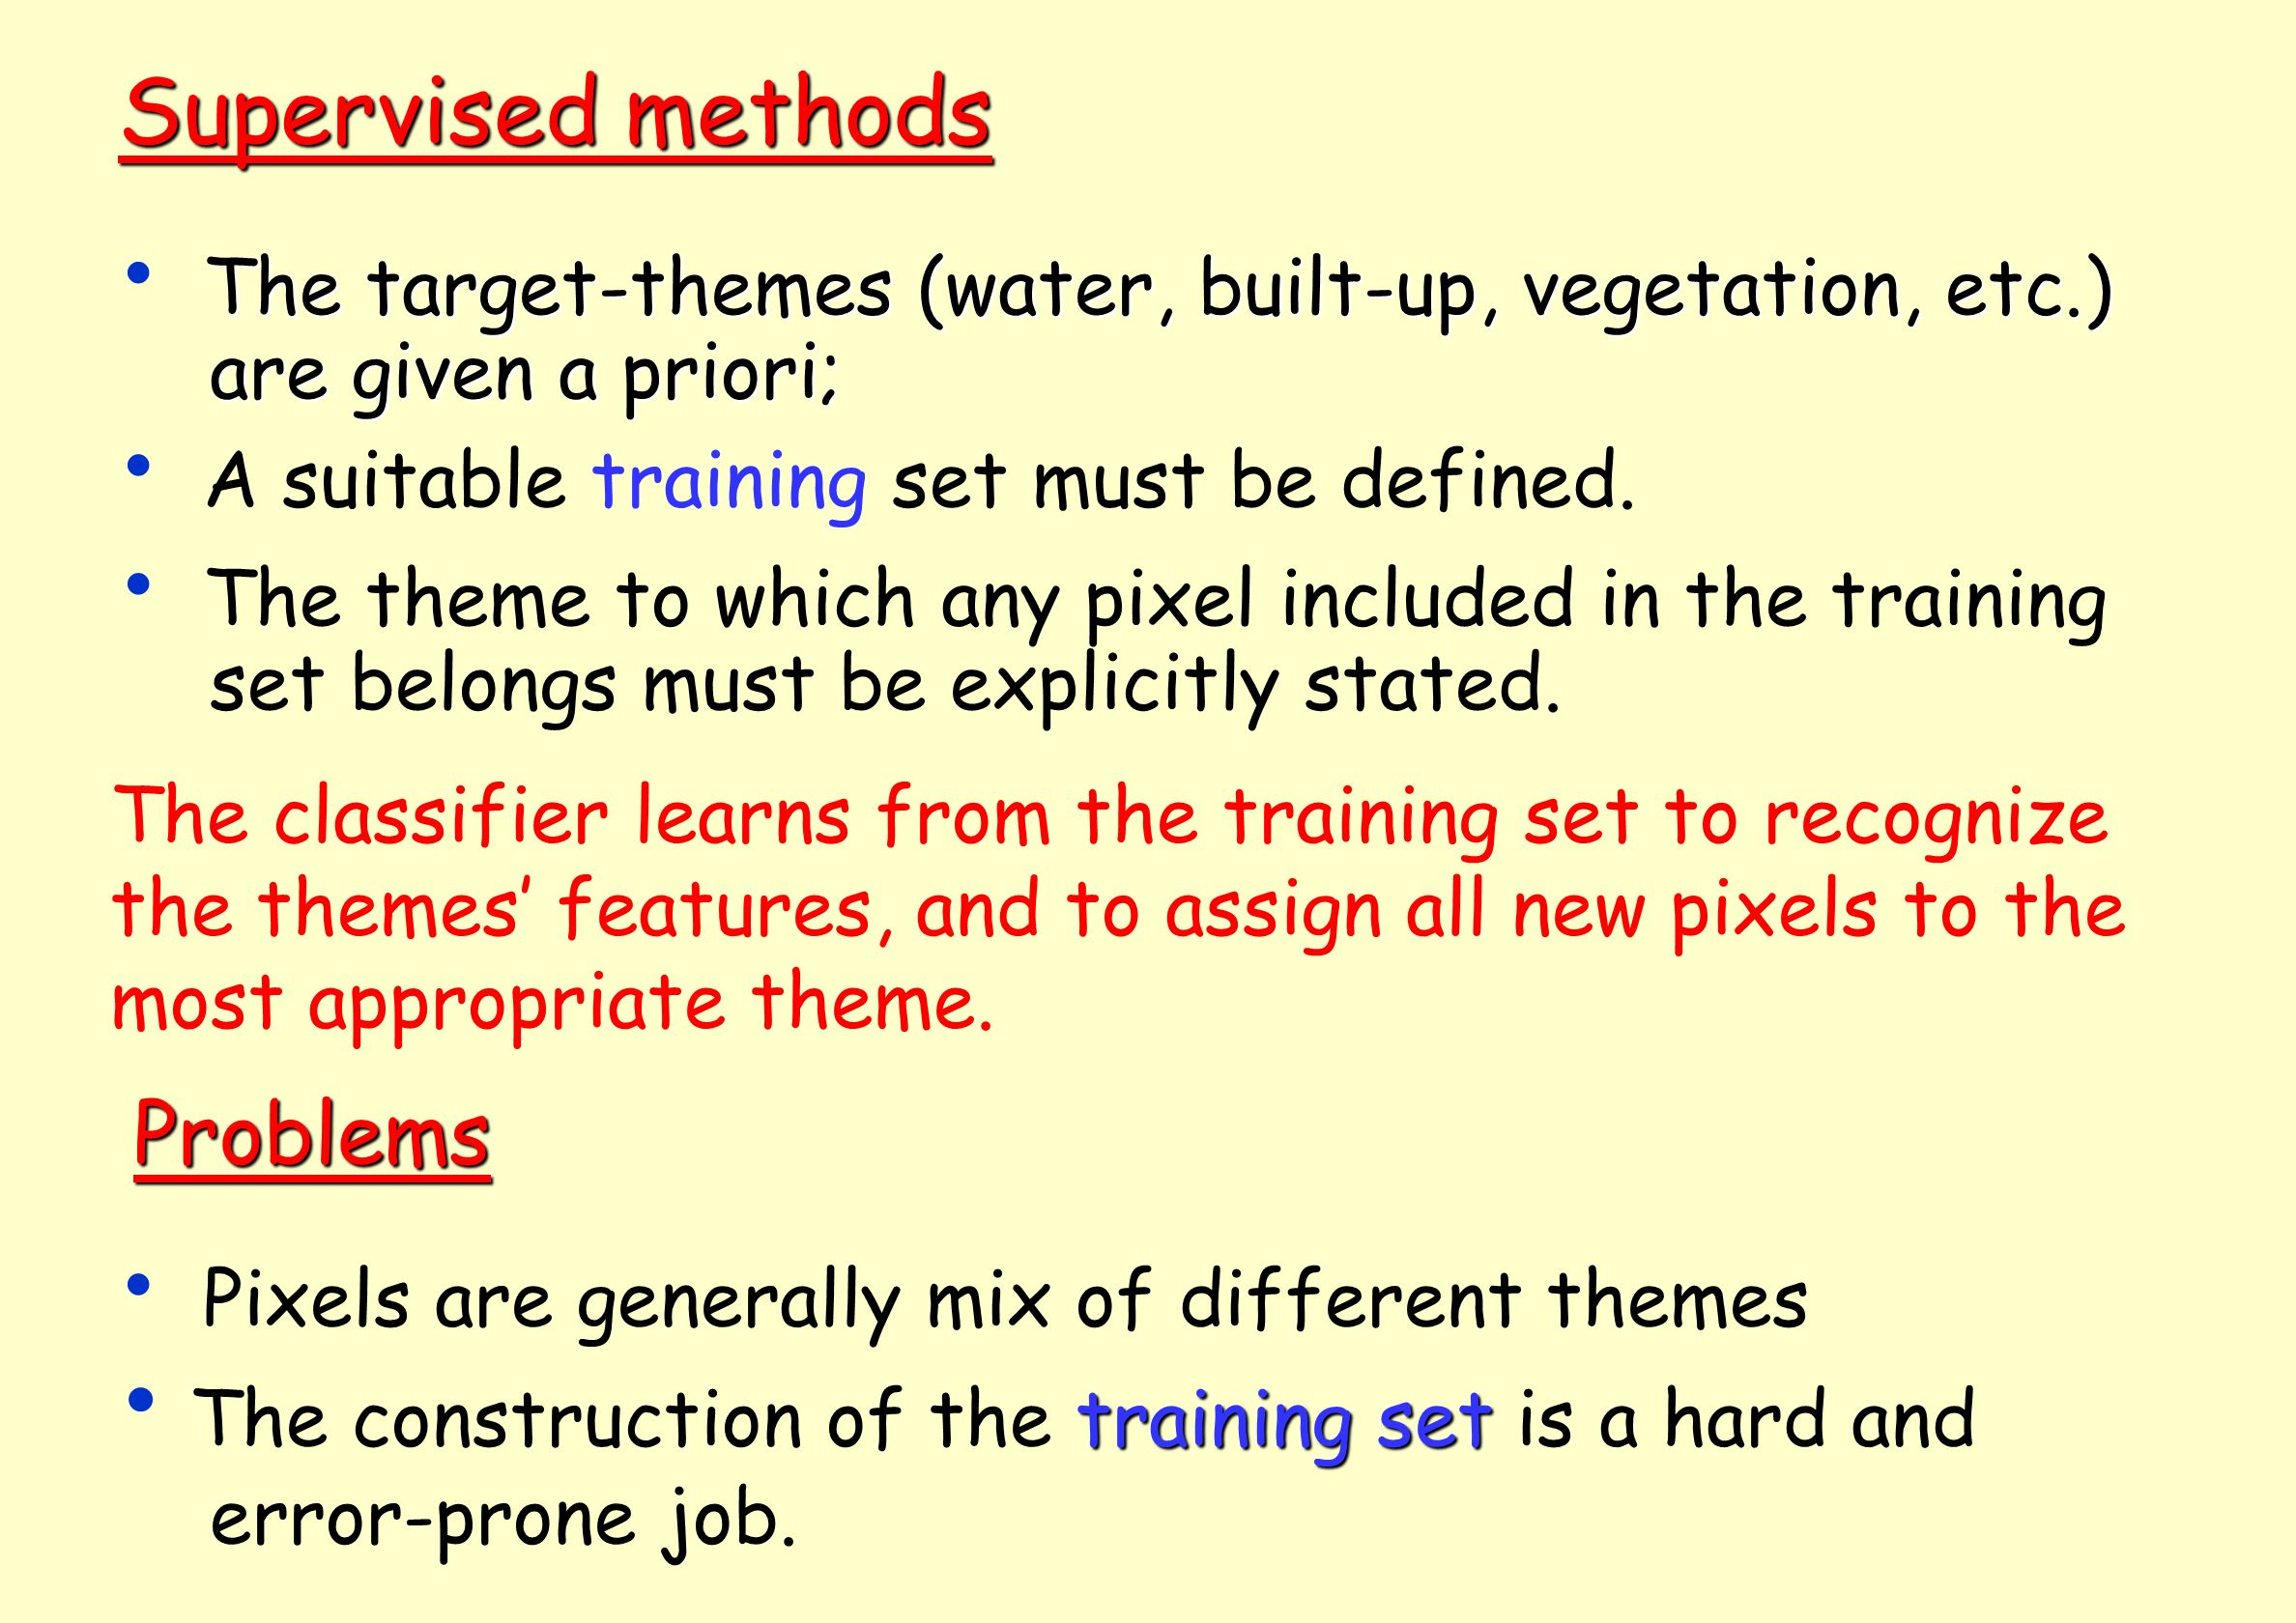 Supervised methods Problems are given a priori;